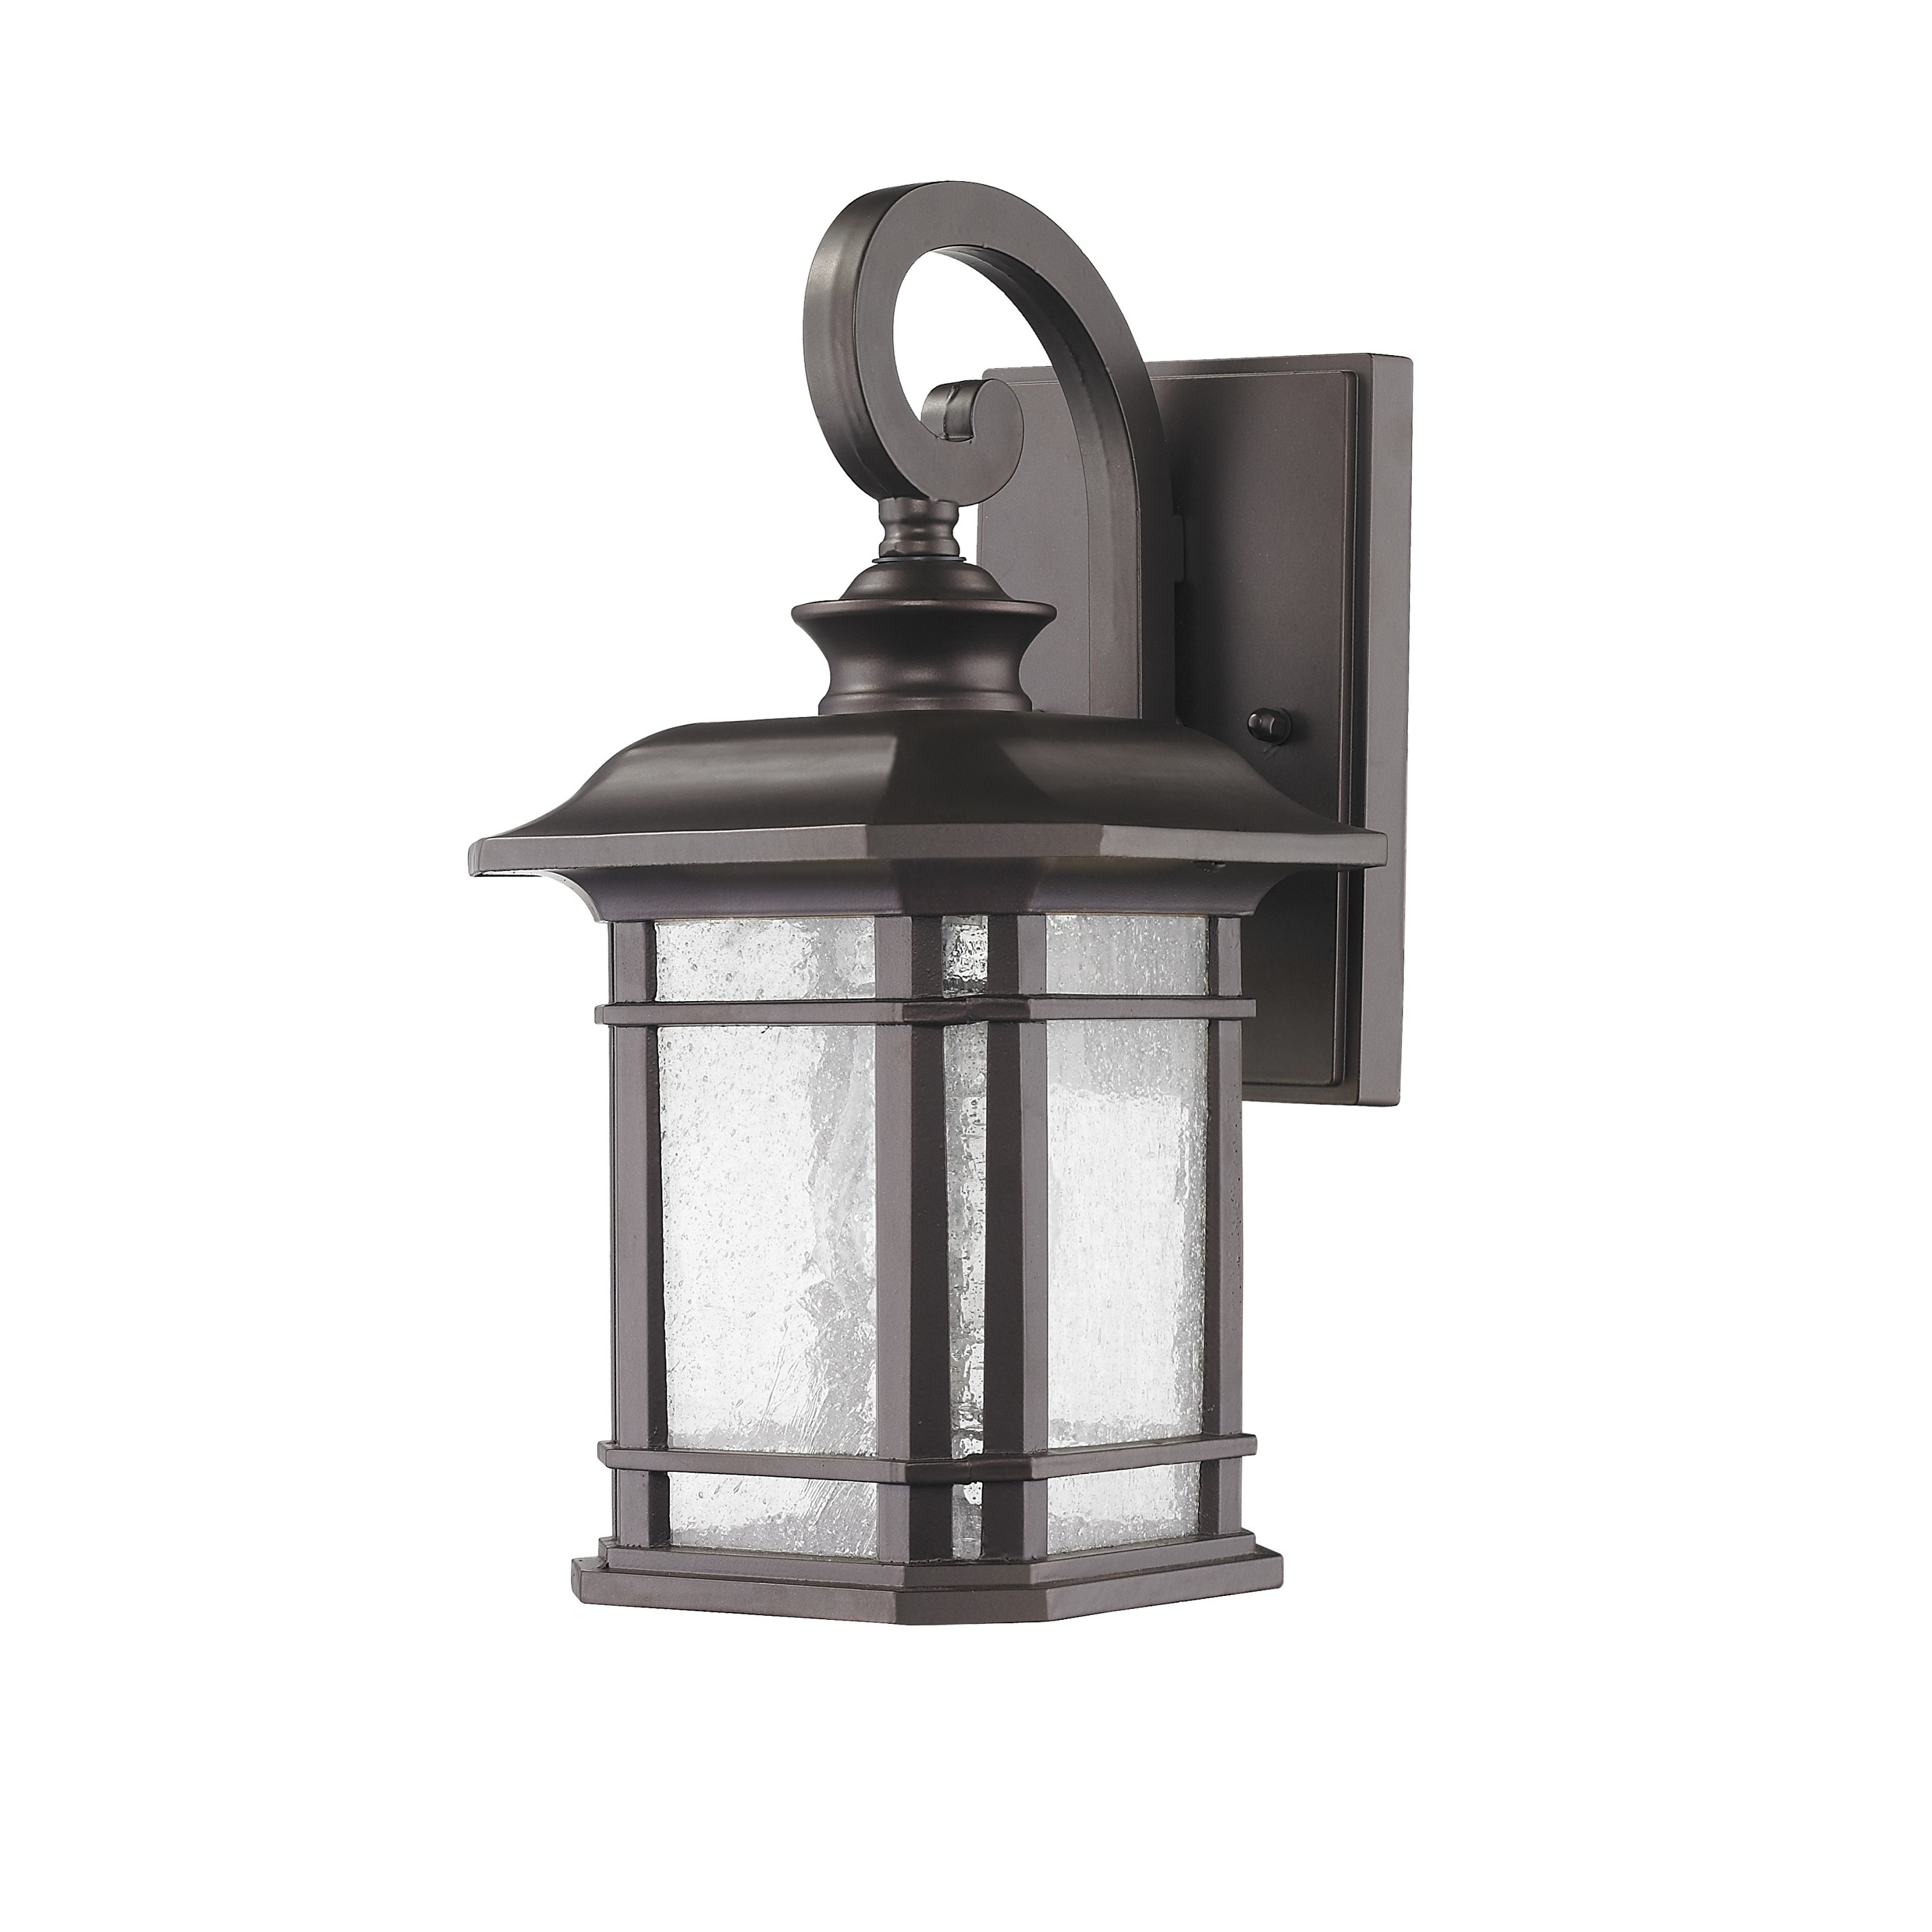 Outdoor Wall Lighting Wayfair 1 Light Lantern ~ Loversiq Pertaining To Most Current Contemporary Outdoor Solar Lights At Wayfair (View 2 of 20)